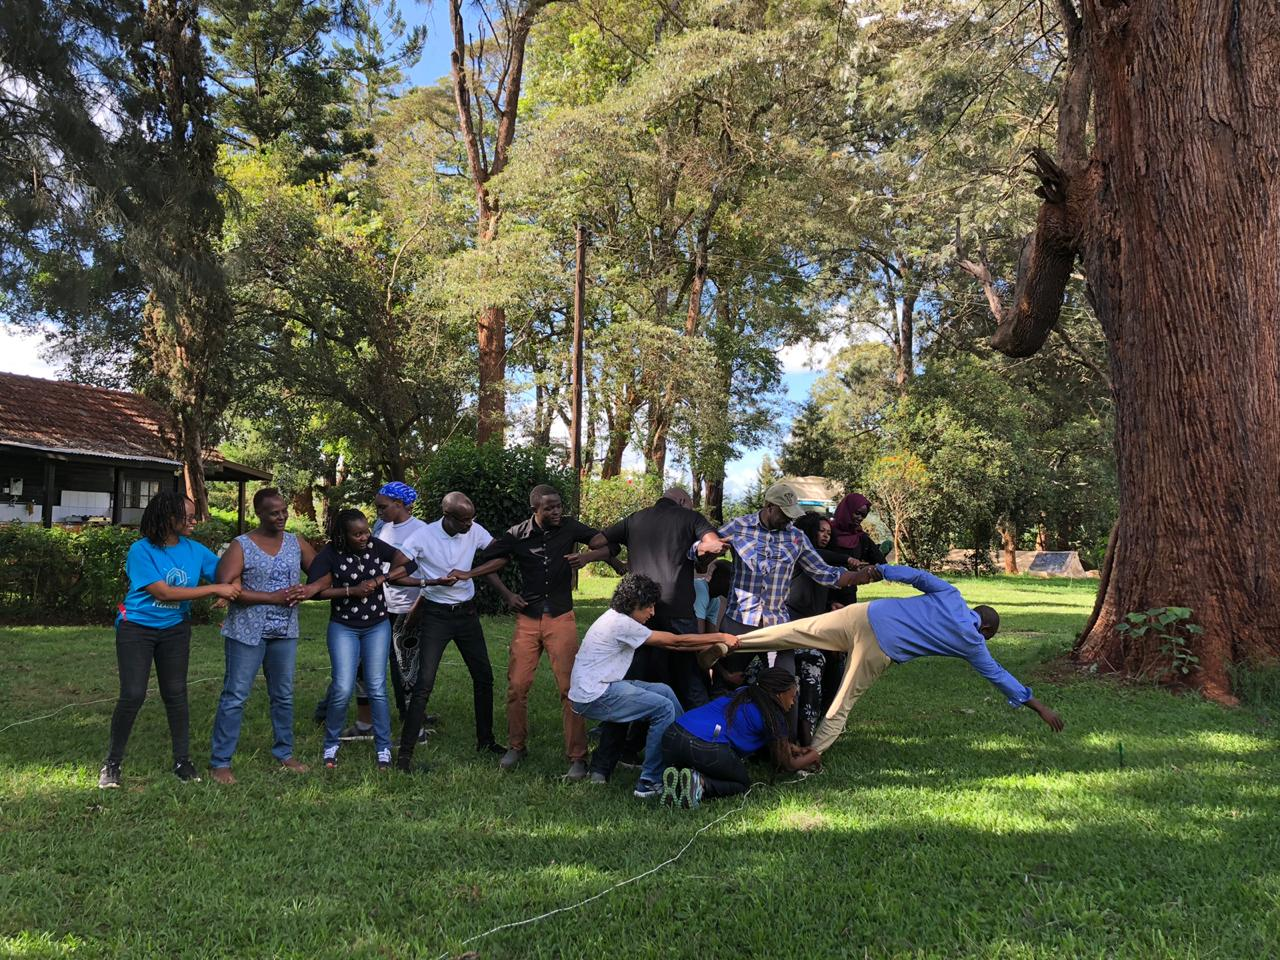 Over the retreat, Fellows were faced with many challenges that required them to reflect on their leadership journeys and patterns, as well as to collaborate.